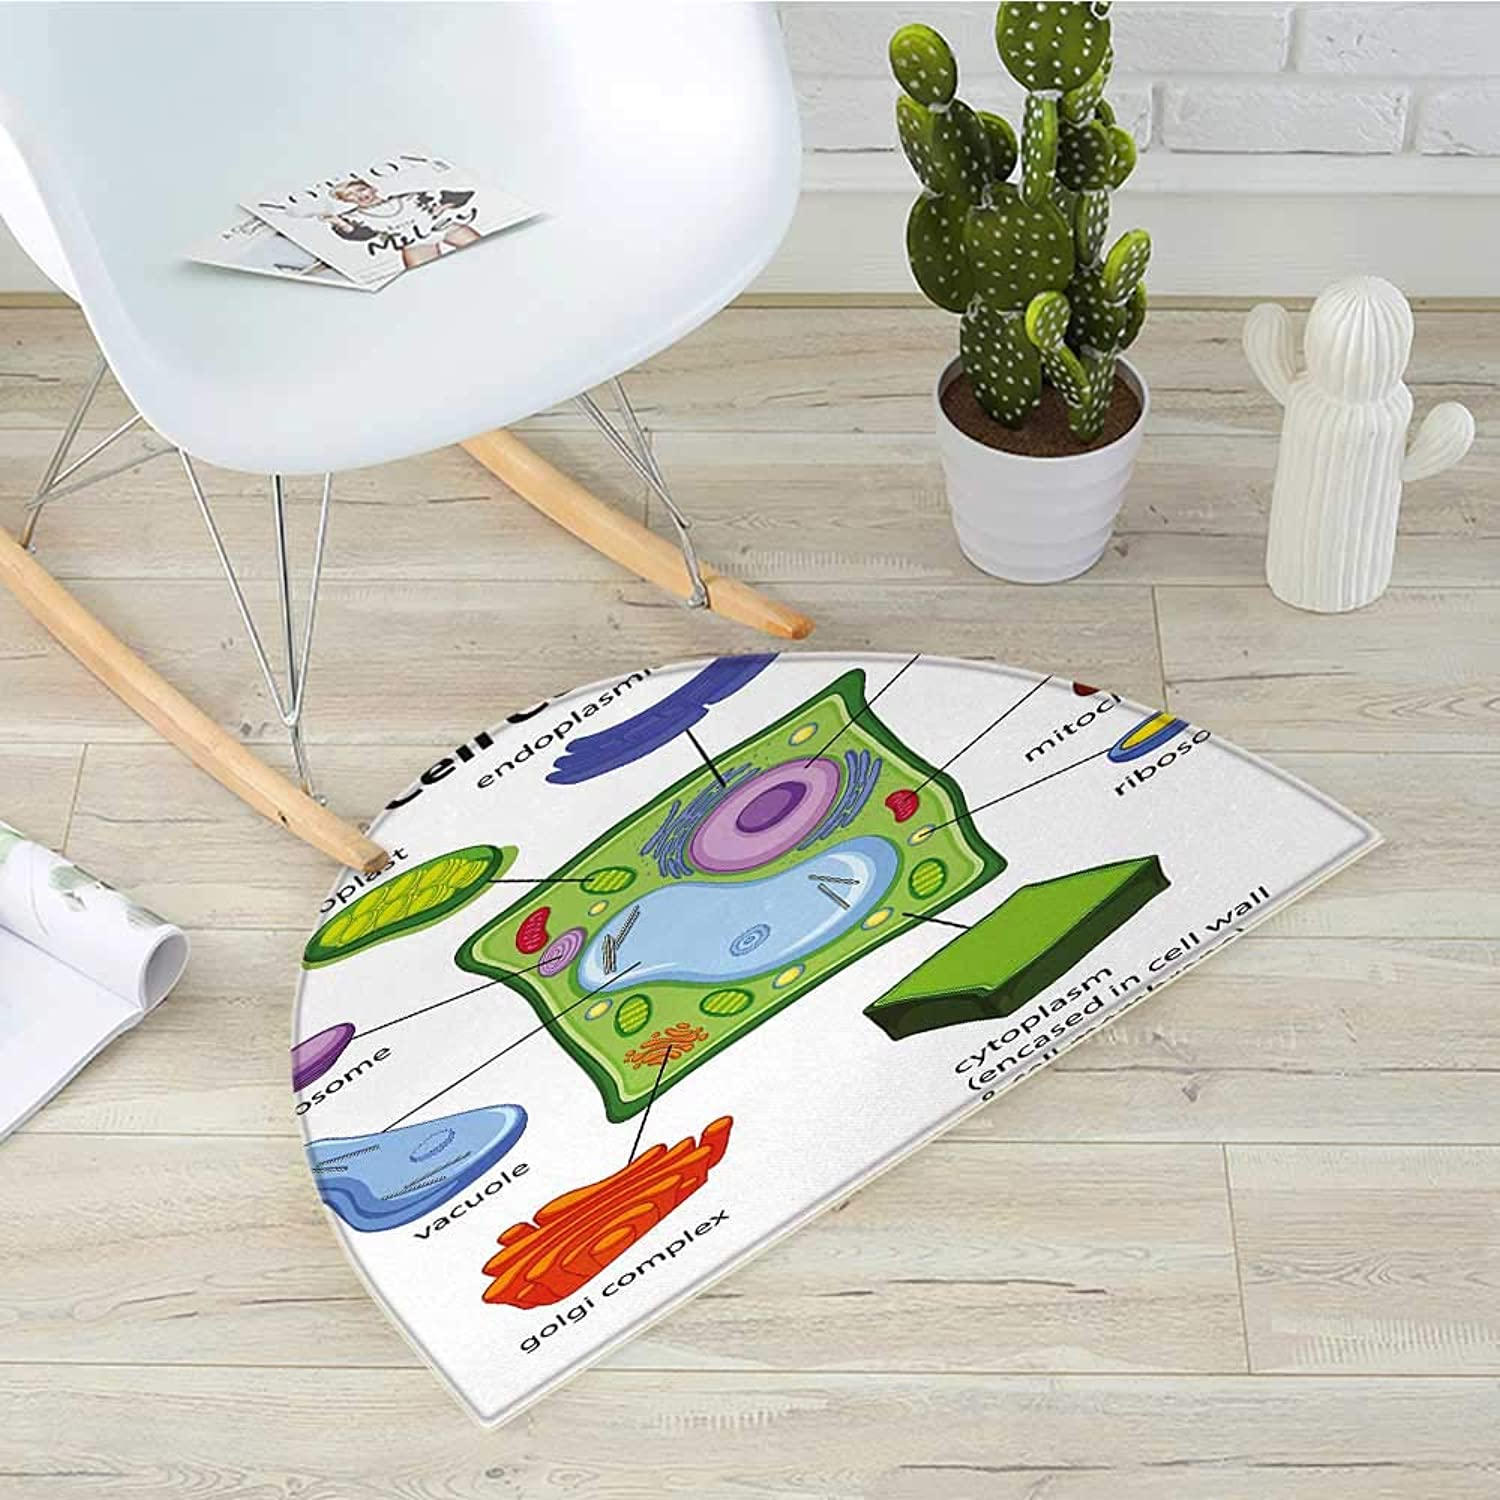 Educational Half Round Door mats Chart Showing Plant Cell Components in Cartoon Style Science Living Structure Bathroom Mat H 43.3  xD 64.9  Multicolor